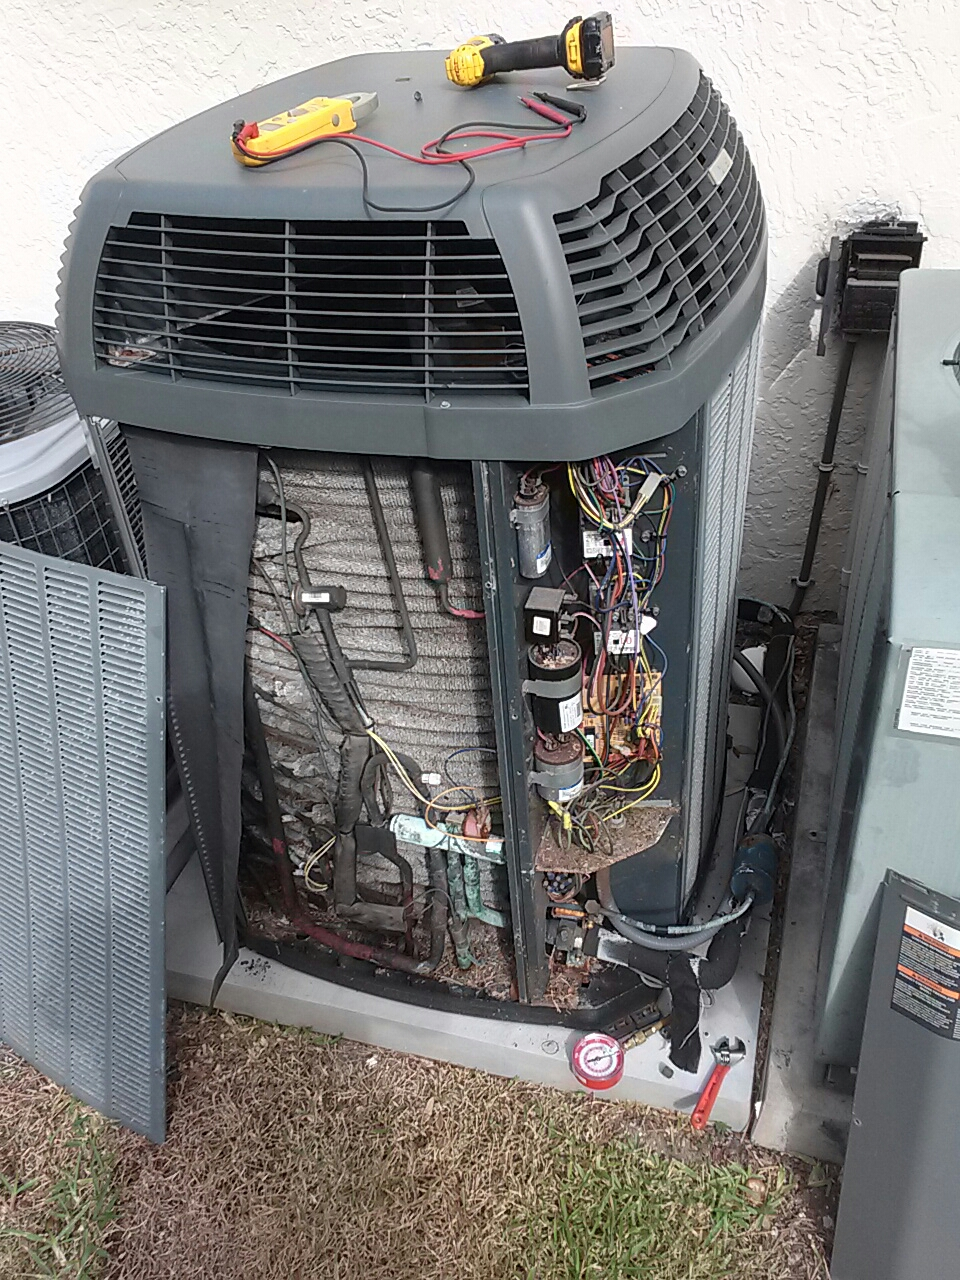 Speed Electric Fan Wiring Diagram Also Hot Air Furnace Wiring Diagram